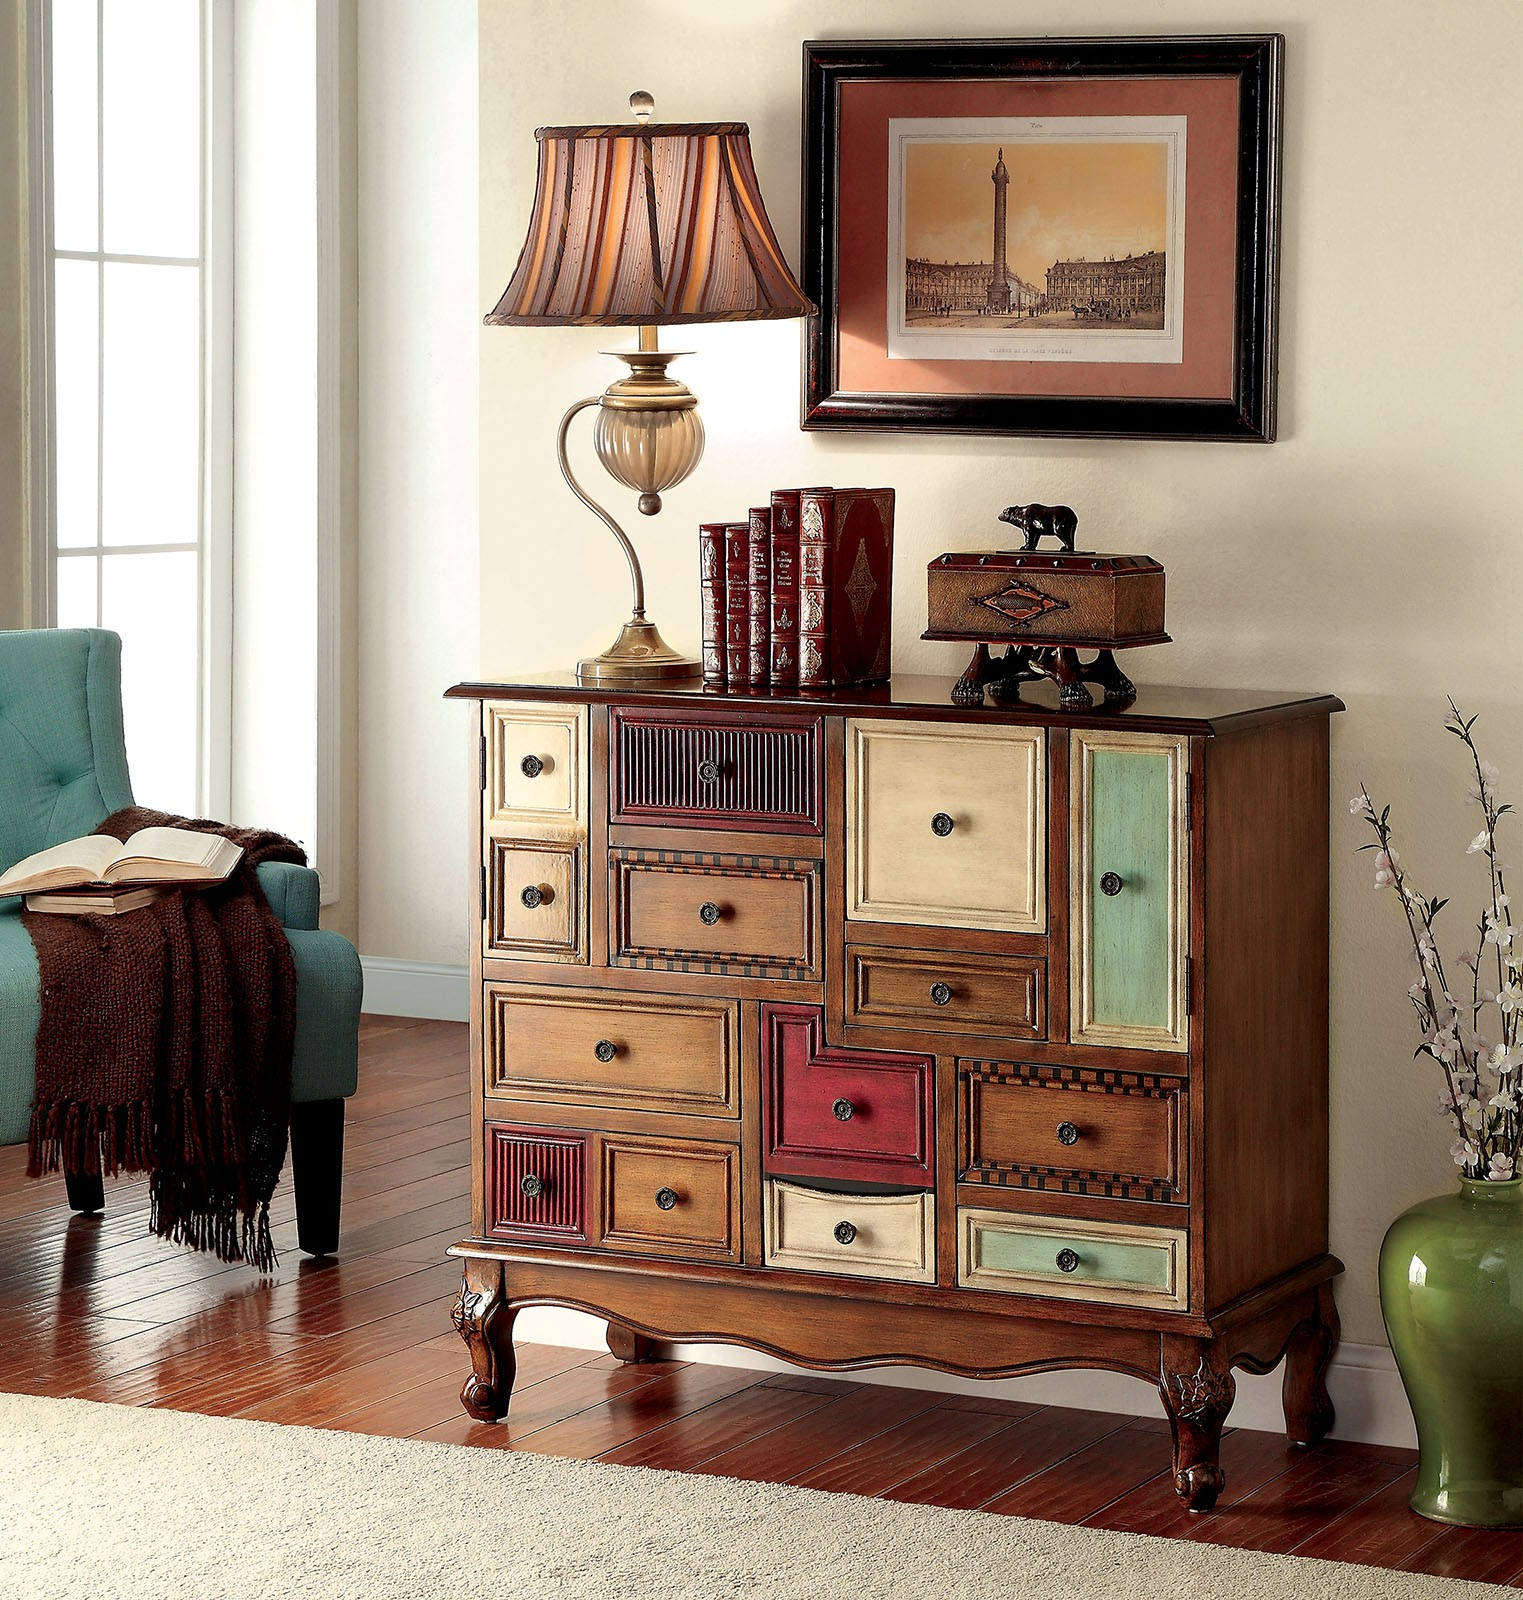 Simple Relax 1PerfectChoice Desree Accent Chest Cabinet Storage Console  Table Multi Colored Antique Walnut